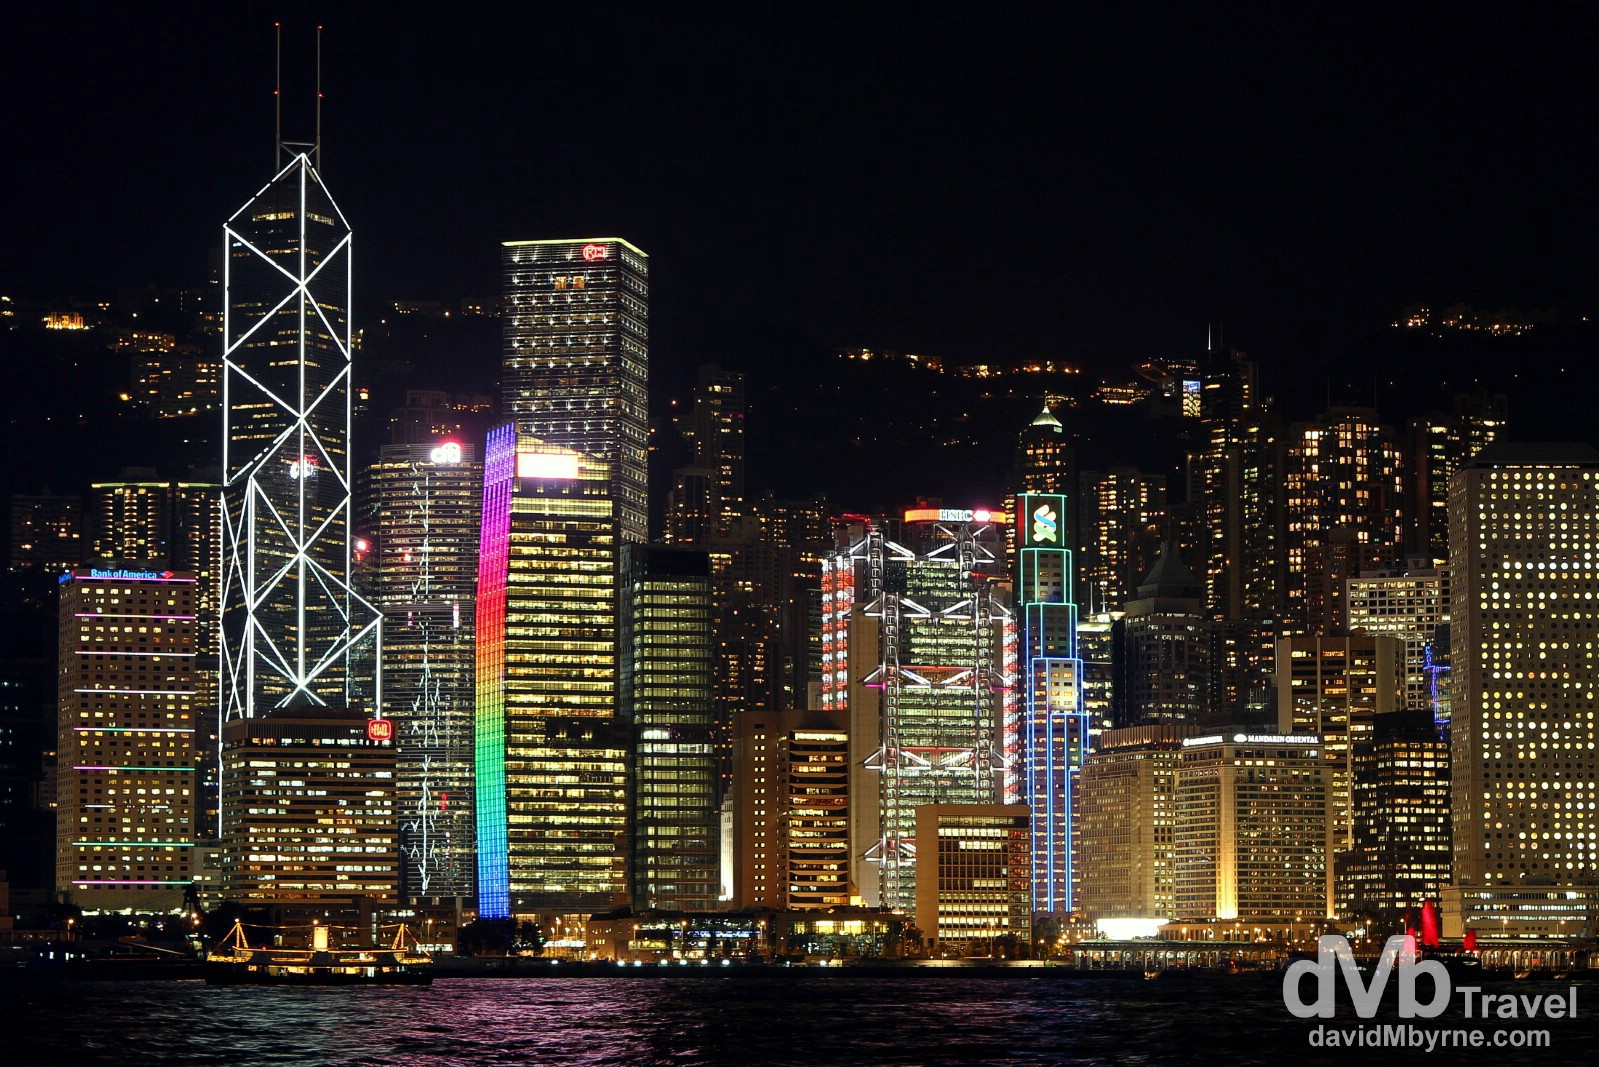 The Hong Kong Money Shot #1: The neon skyline of Central Hong Kong as seen from across Victoria Harbour in Kowloon. Hong Kong, China. October 17th 2012.